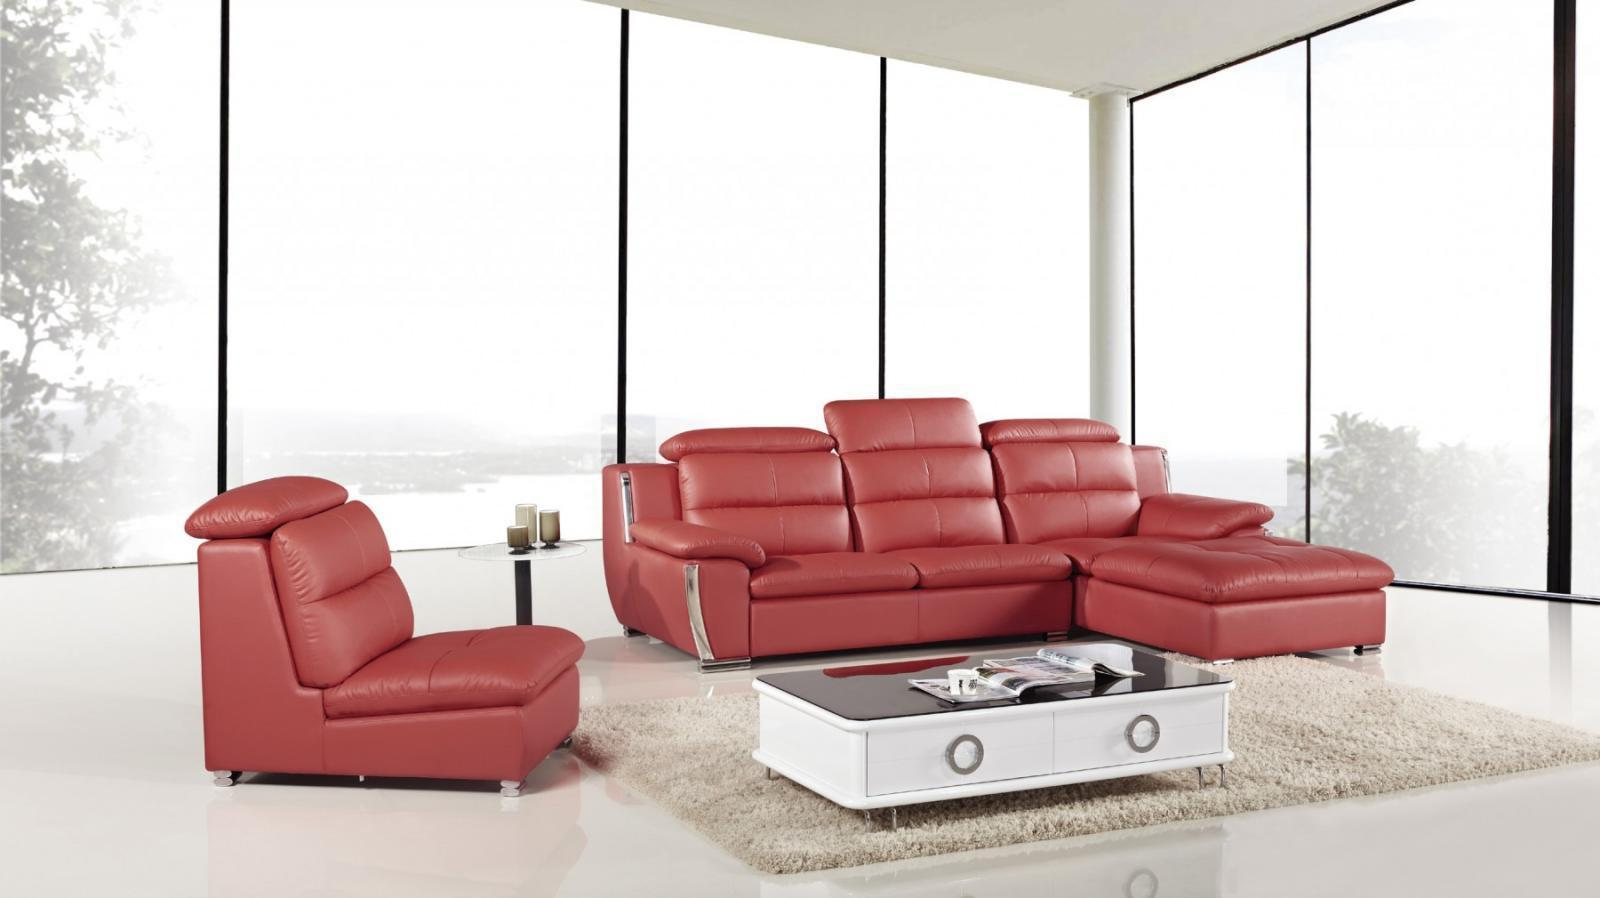 American Eagle AE-L729 Modern Red Faux Leather Sofa Set w Left Hand Chase 3pc